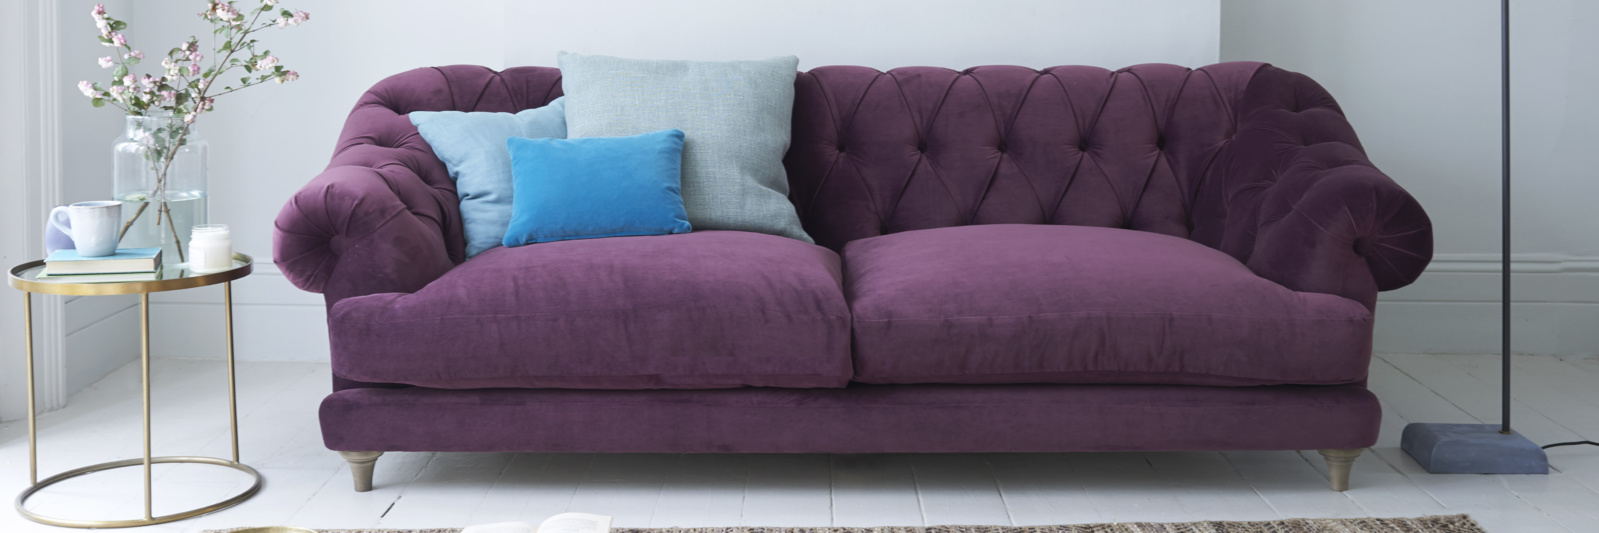 purple sofa AIWAYCT